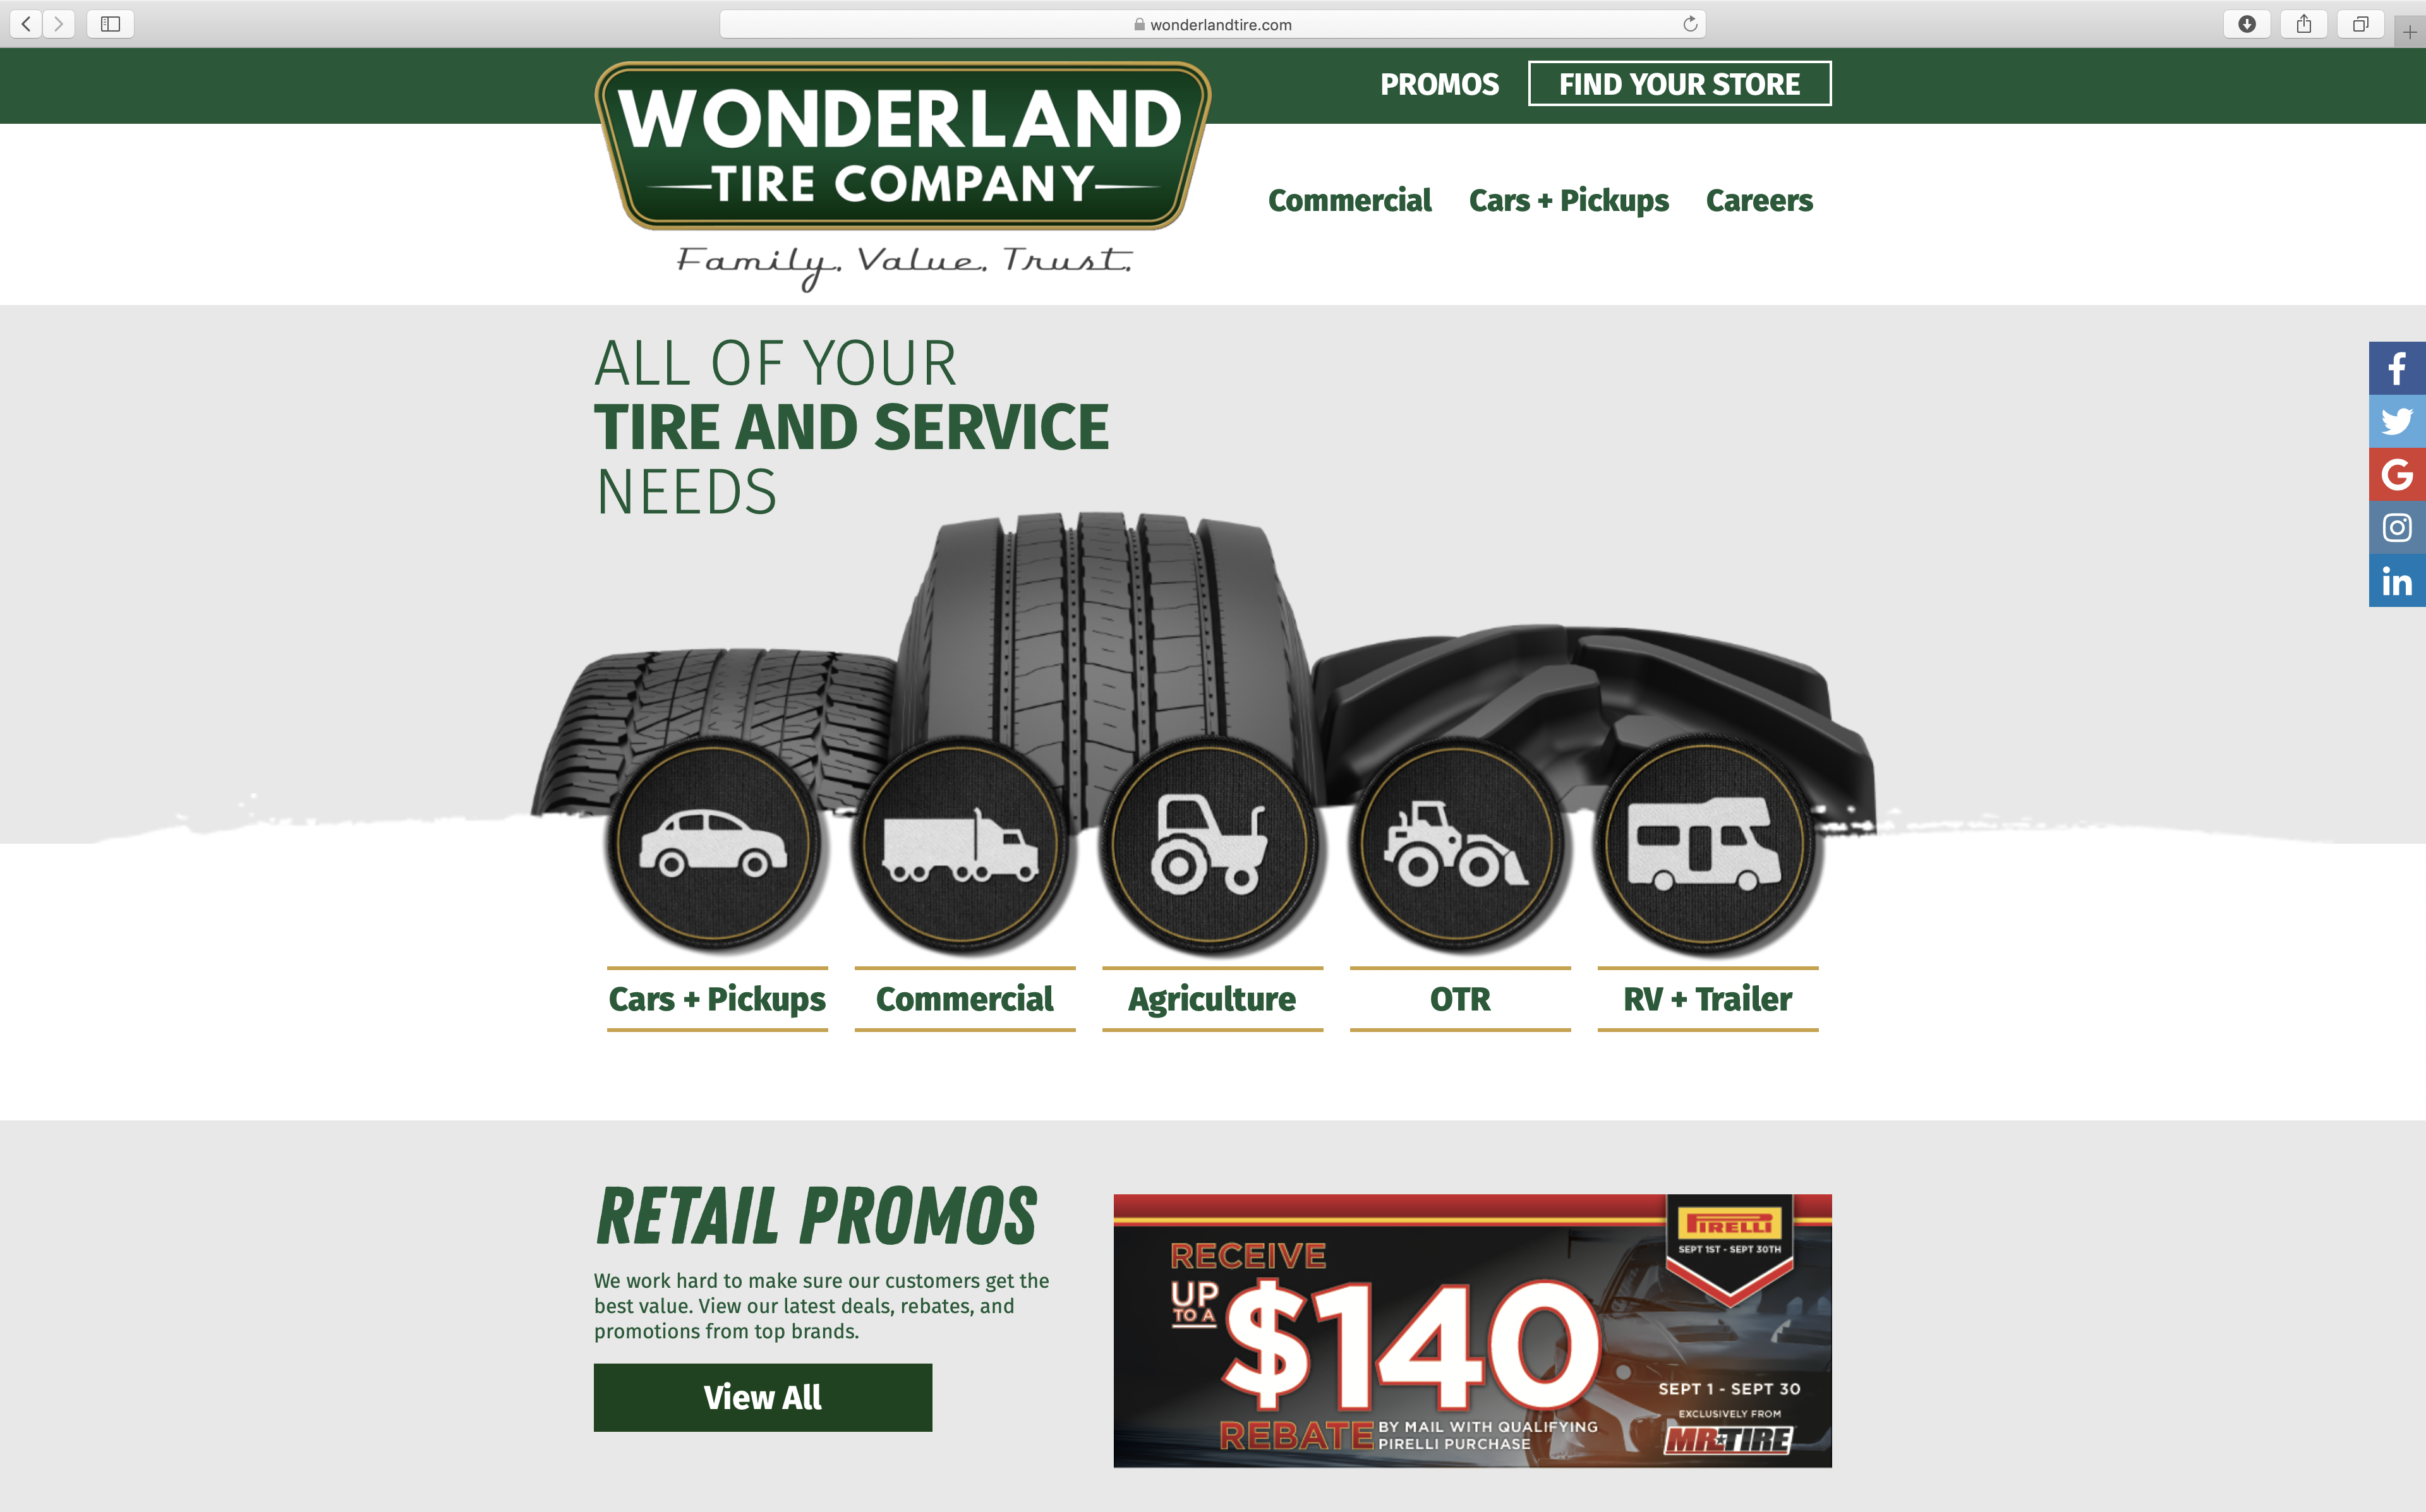 wonderland tire company homepage design with patches showing services for tire company in Grand Rapids Michigan